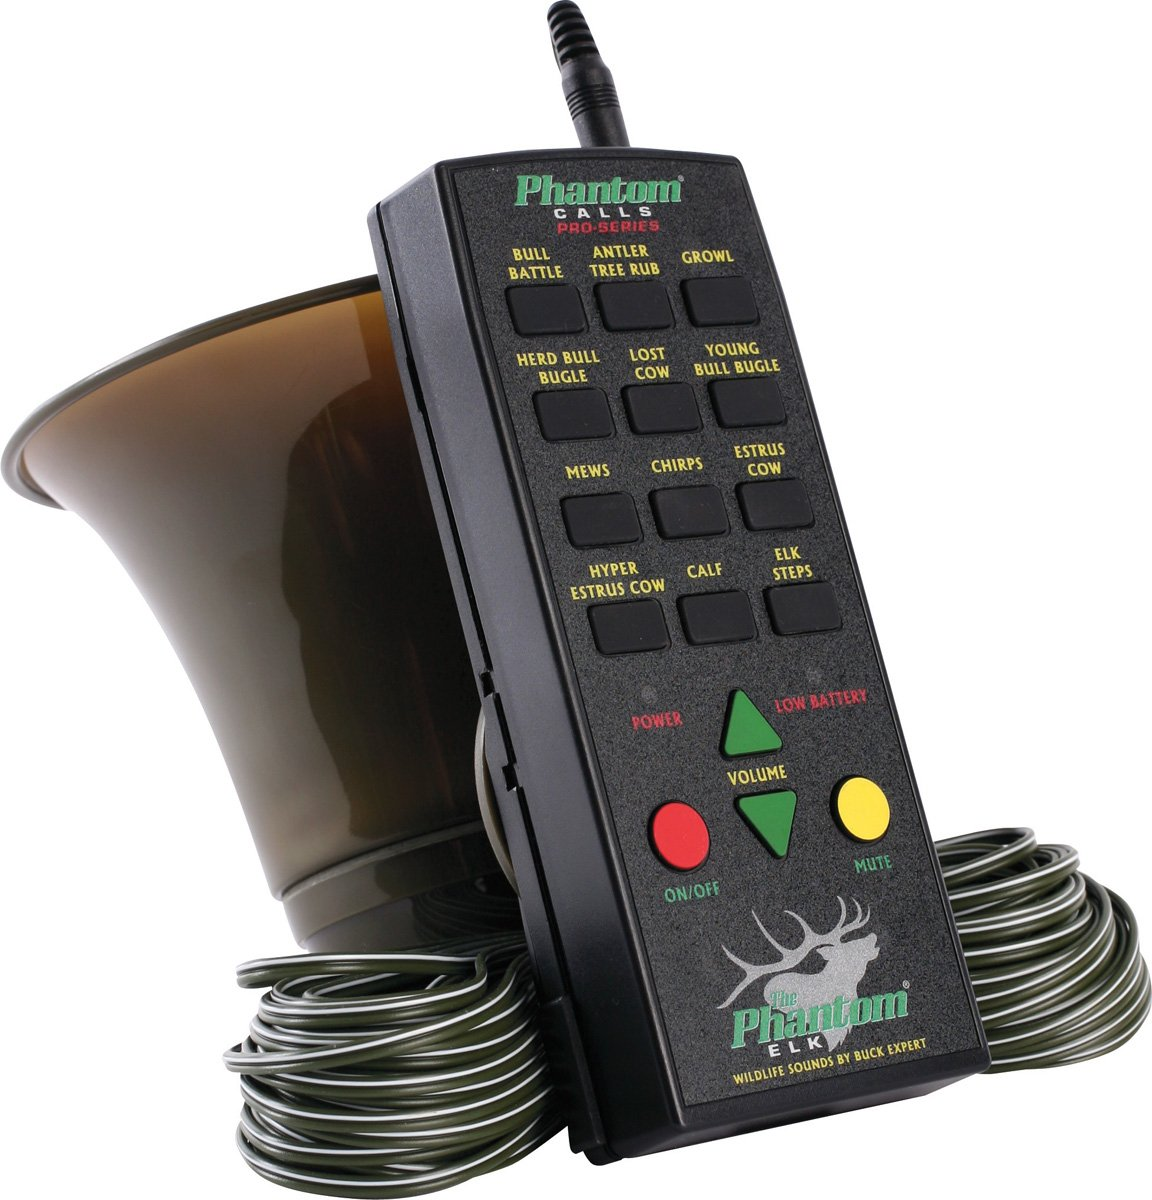 Extreme Dimension Wildlife Calls - Pro Series Wired Elk Call- EDPS250 - Wired Electronic Remote Elk Call - Up to 126 db by Extreme Dimension Wildlife